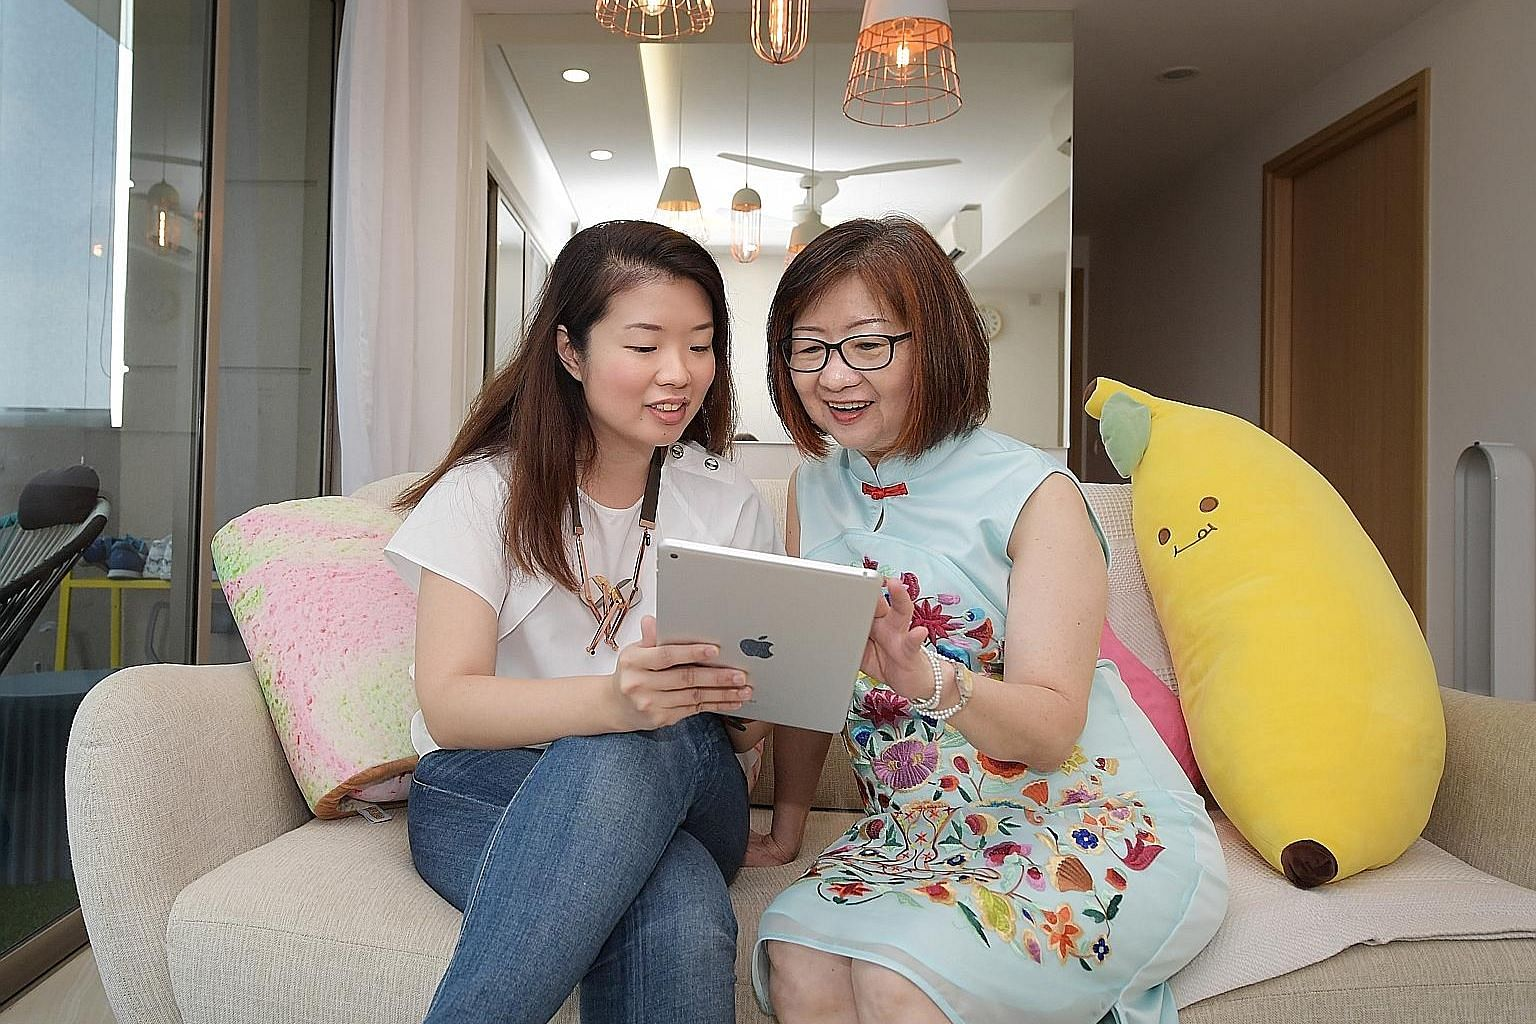 Madam Christina Yeo consults her daughter Annabel Lim, 31, before she shares a news article with her contacts - a practice the 65-year-old developed after she realised she had unknowingly helped to spread fake news.